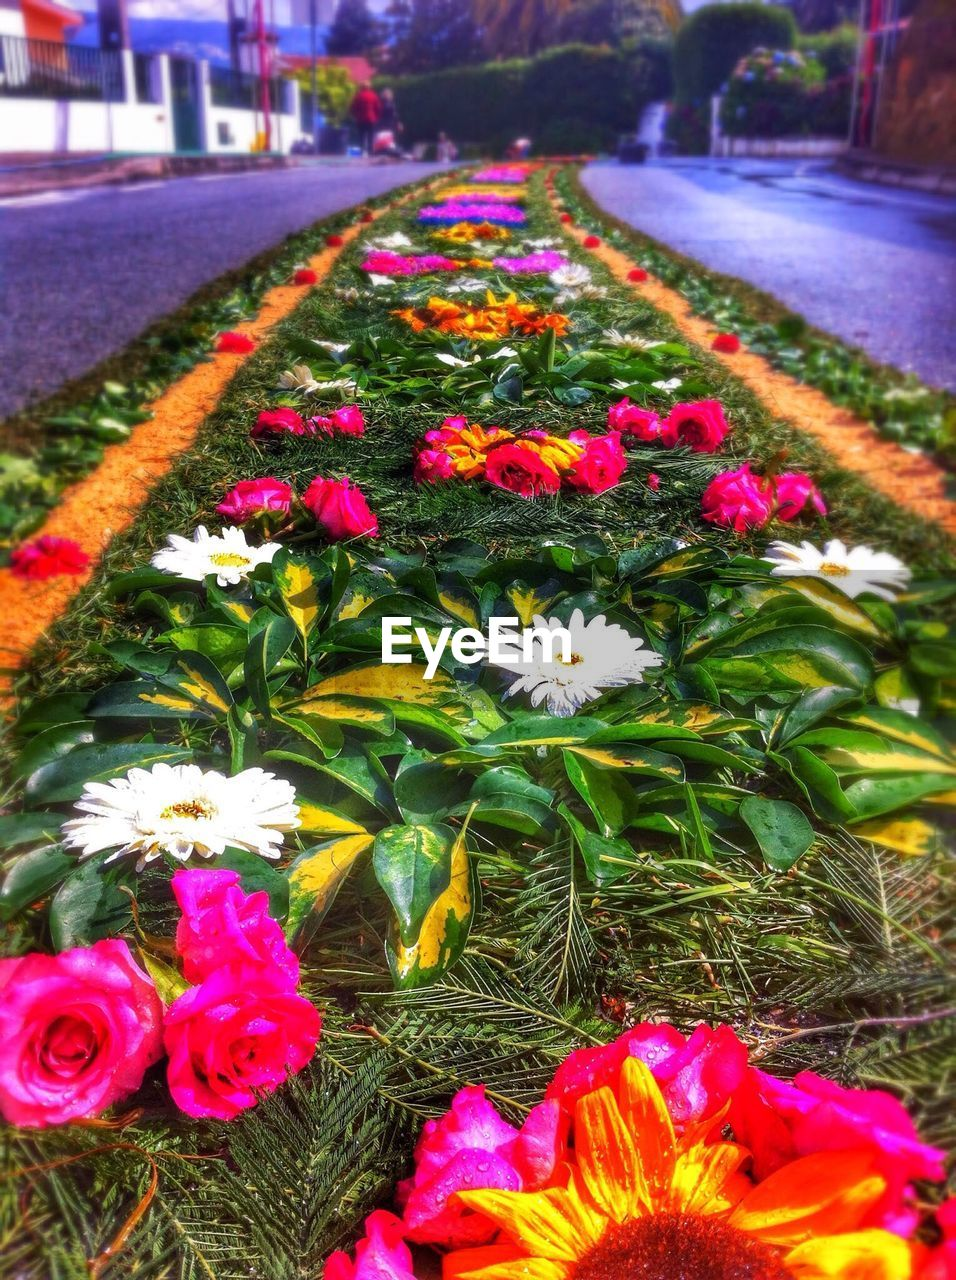 Idyllic view of flowerbed amidst road